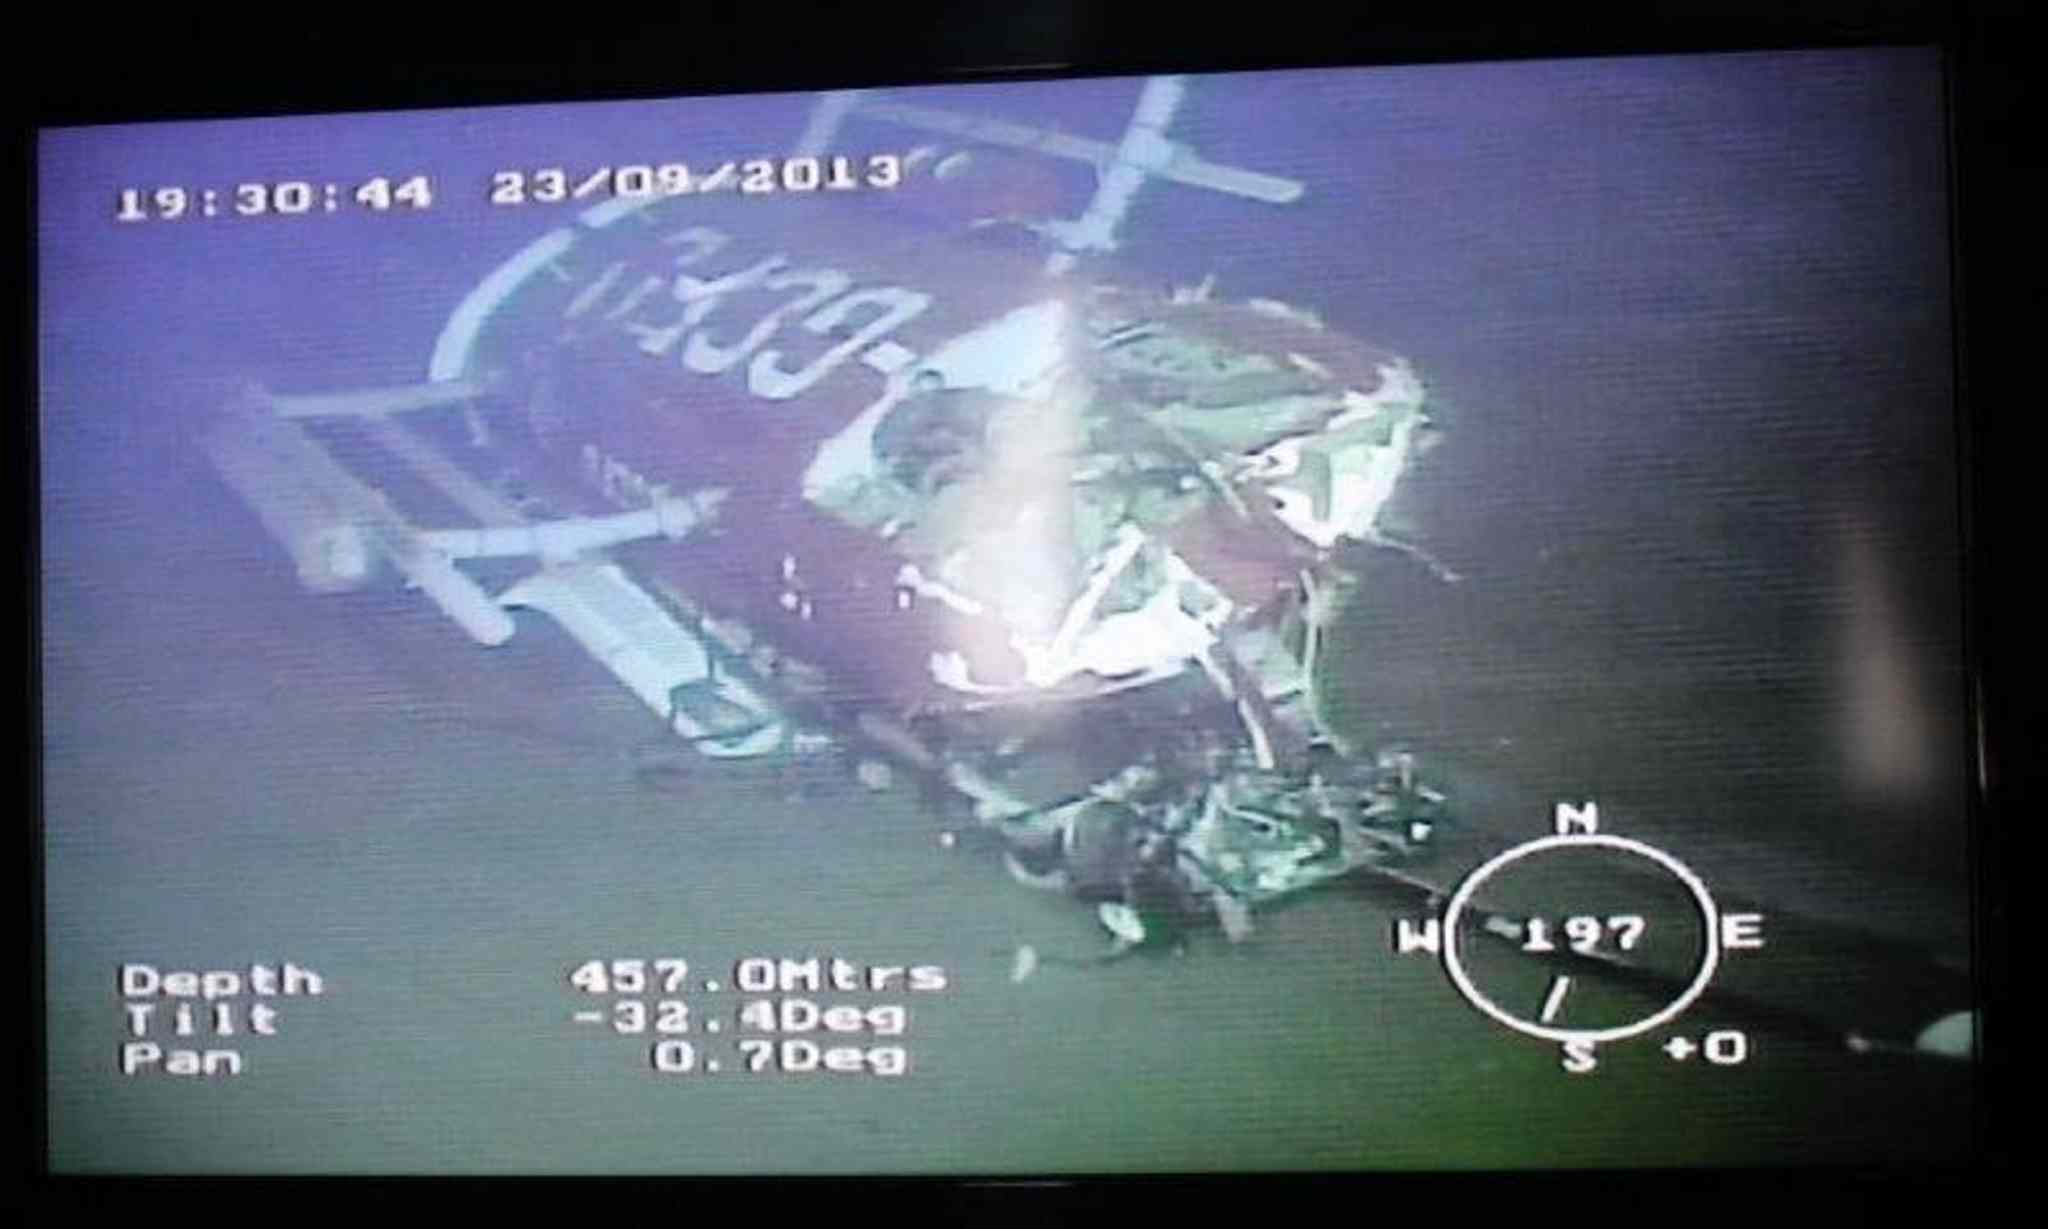 The sunken helicopter wreckage captured underwater by ArcticNet's Remote Operated Vehicle (ROV)